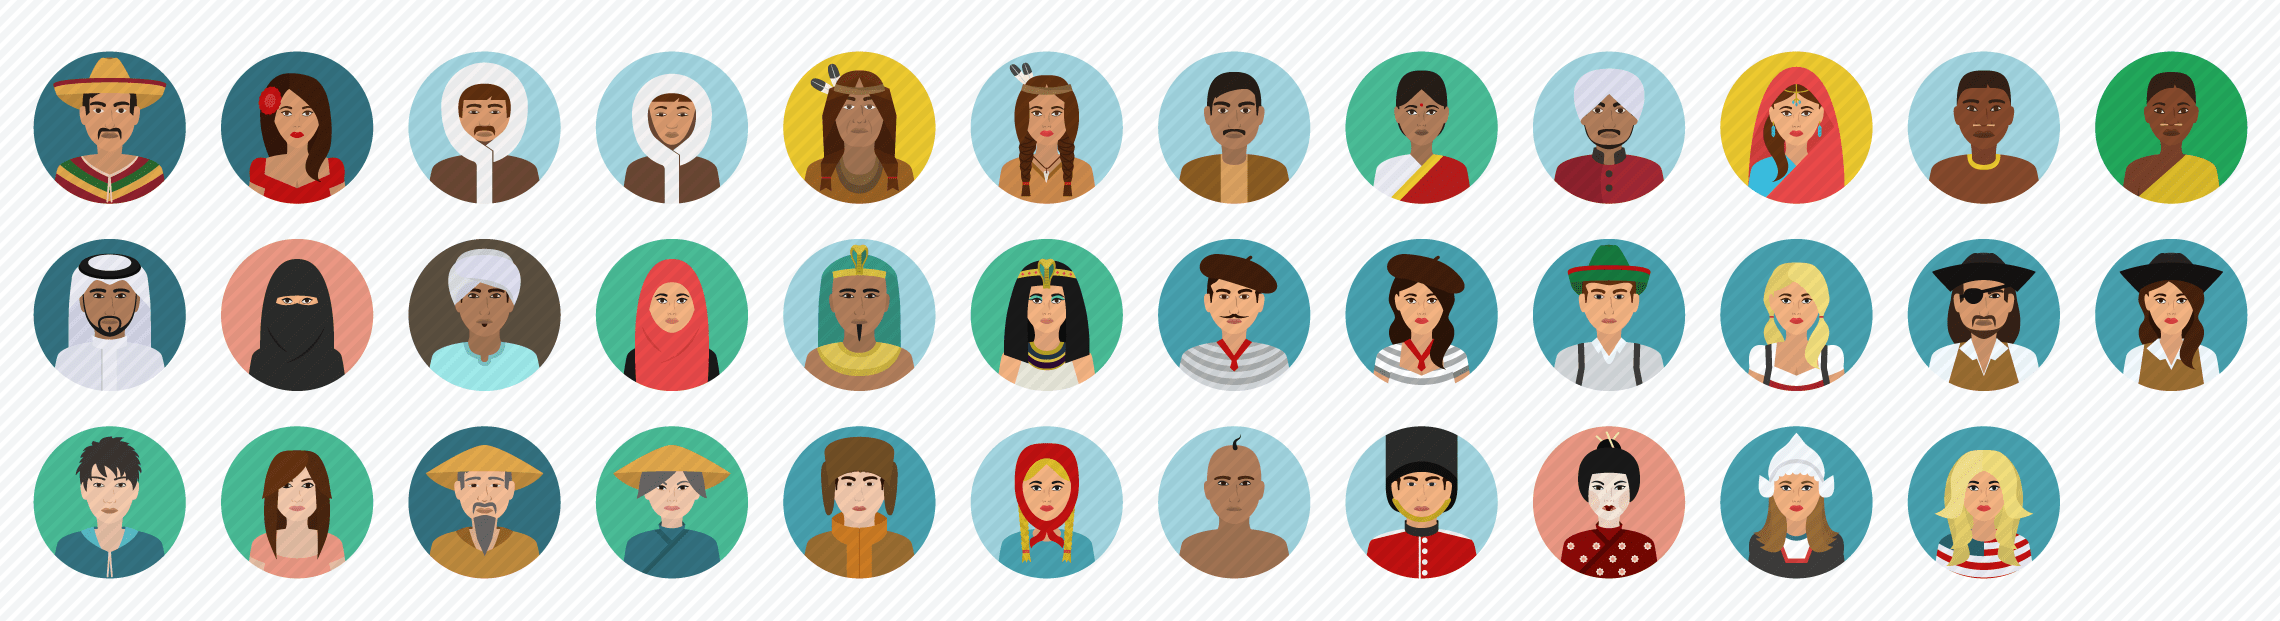 People_Multicultural flat icons